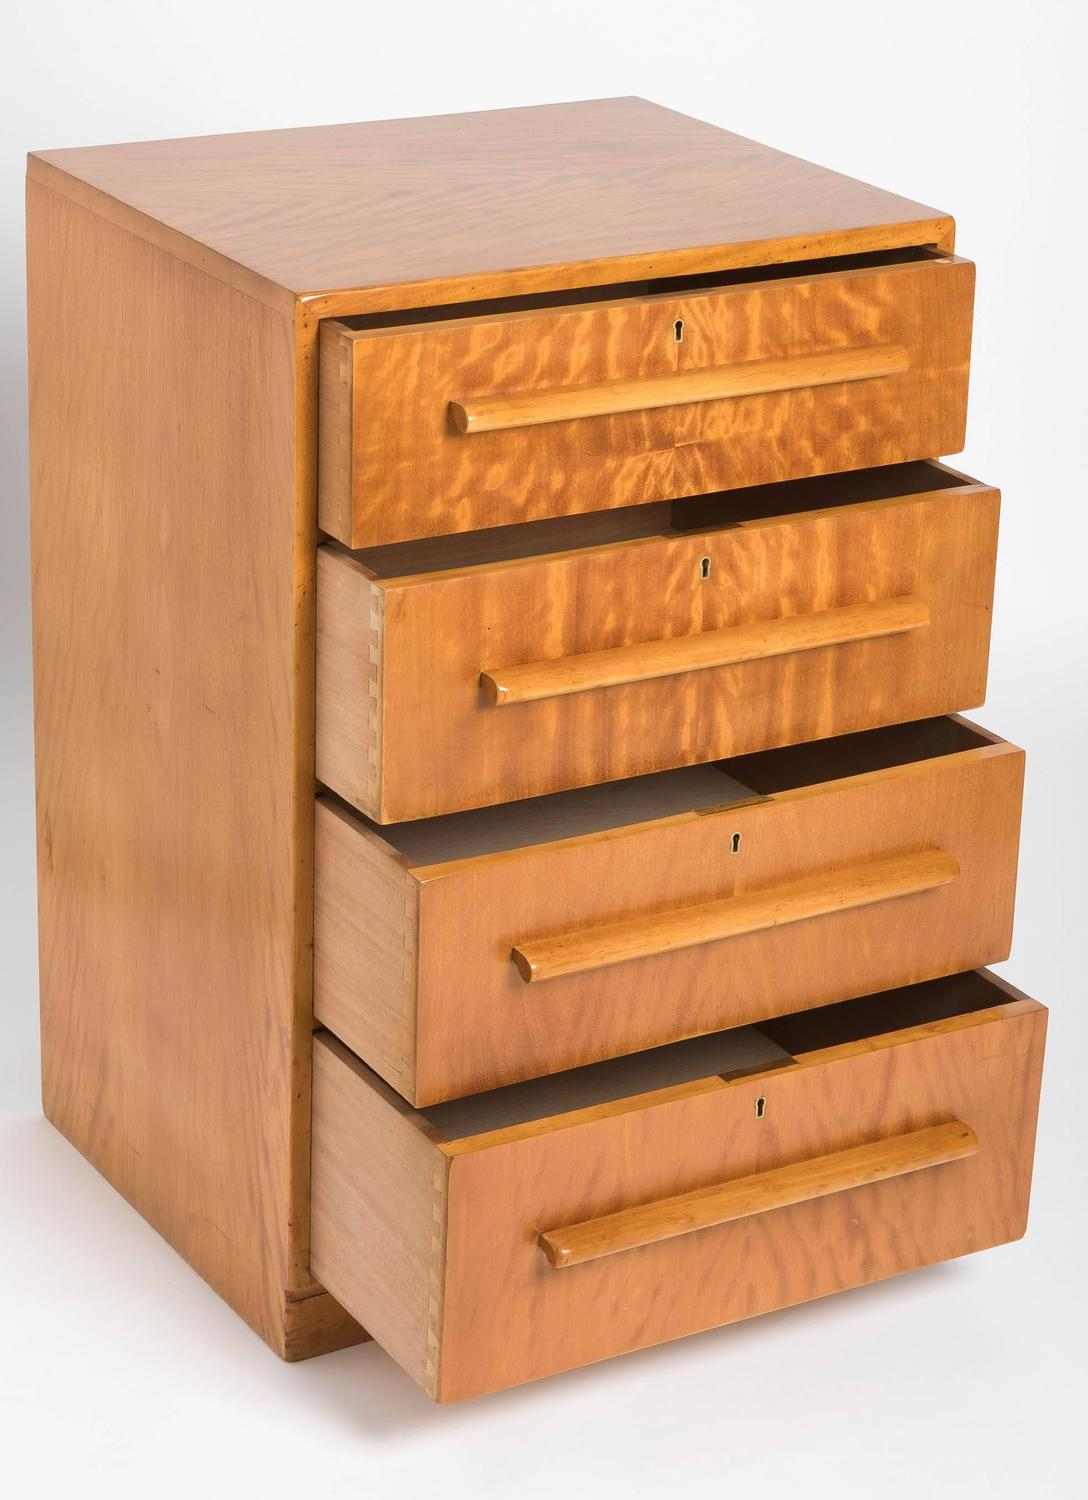 Rare Art Deco Satinwood Chest Of Drawers By Heals Of London For Sale At 1stdibs